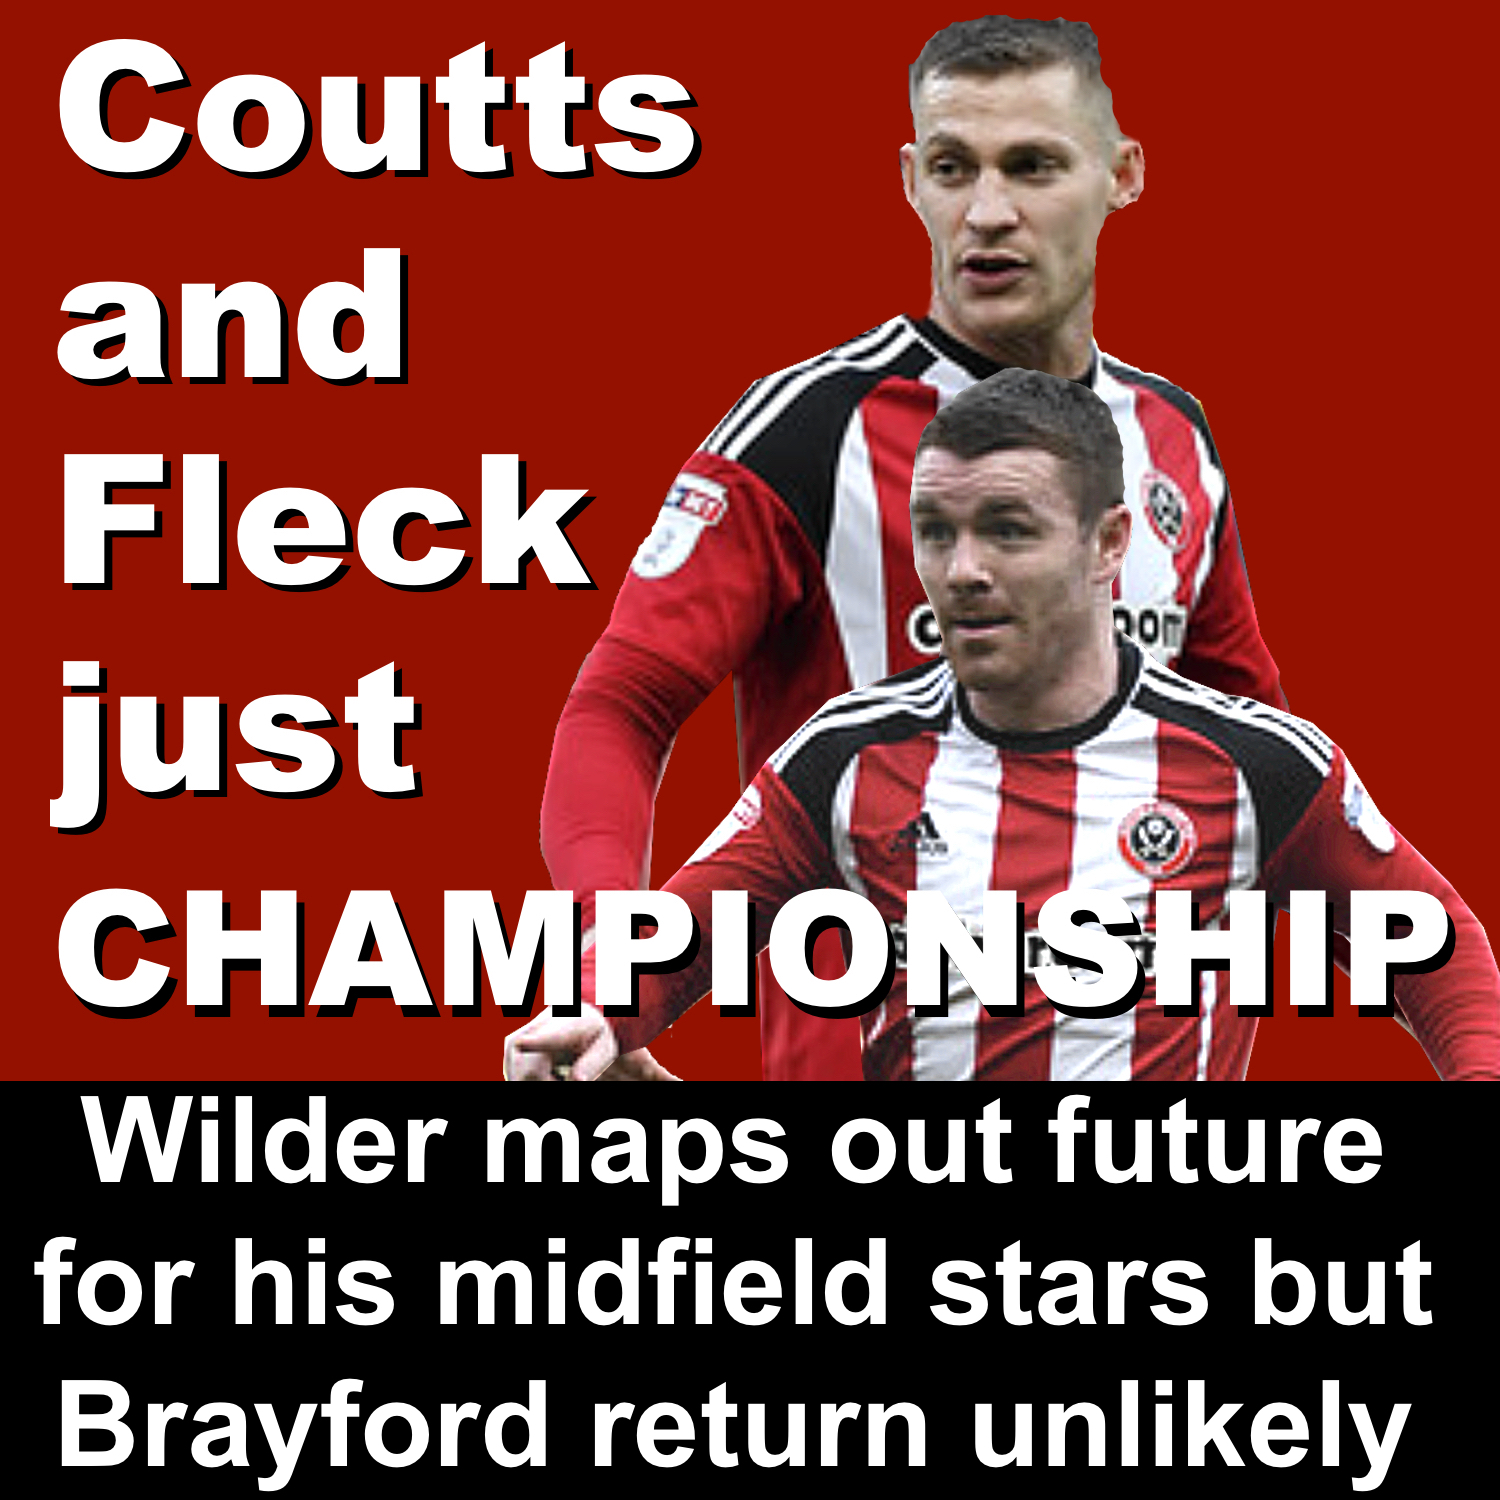 Sheffield United boss Wilder ready to build side around Paul Coutts and John Fleck if Blades reach Championship